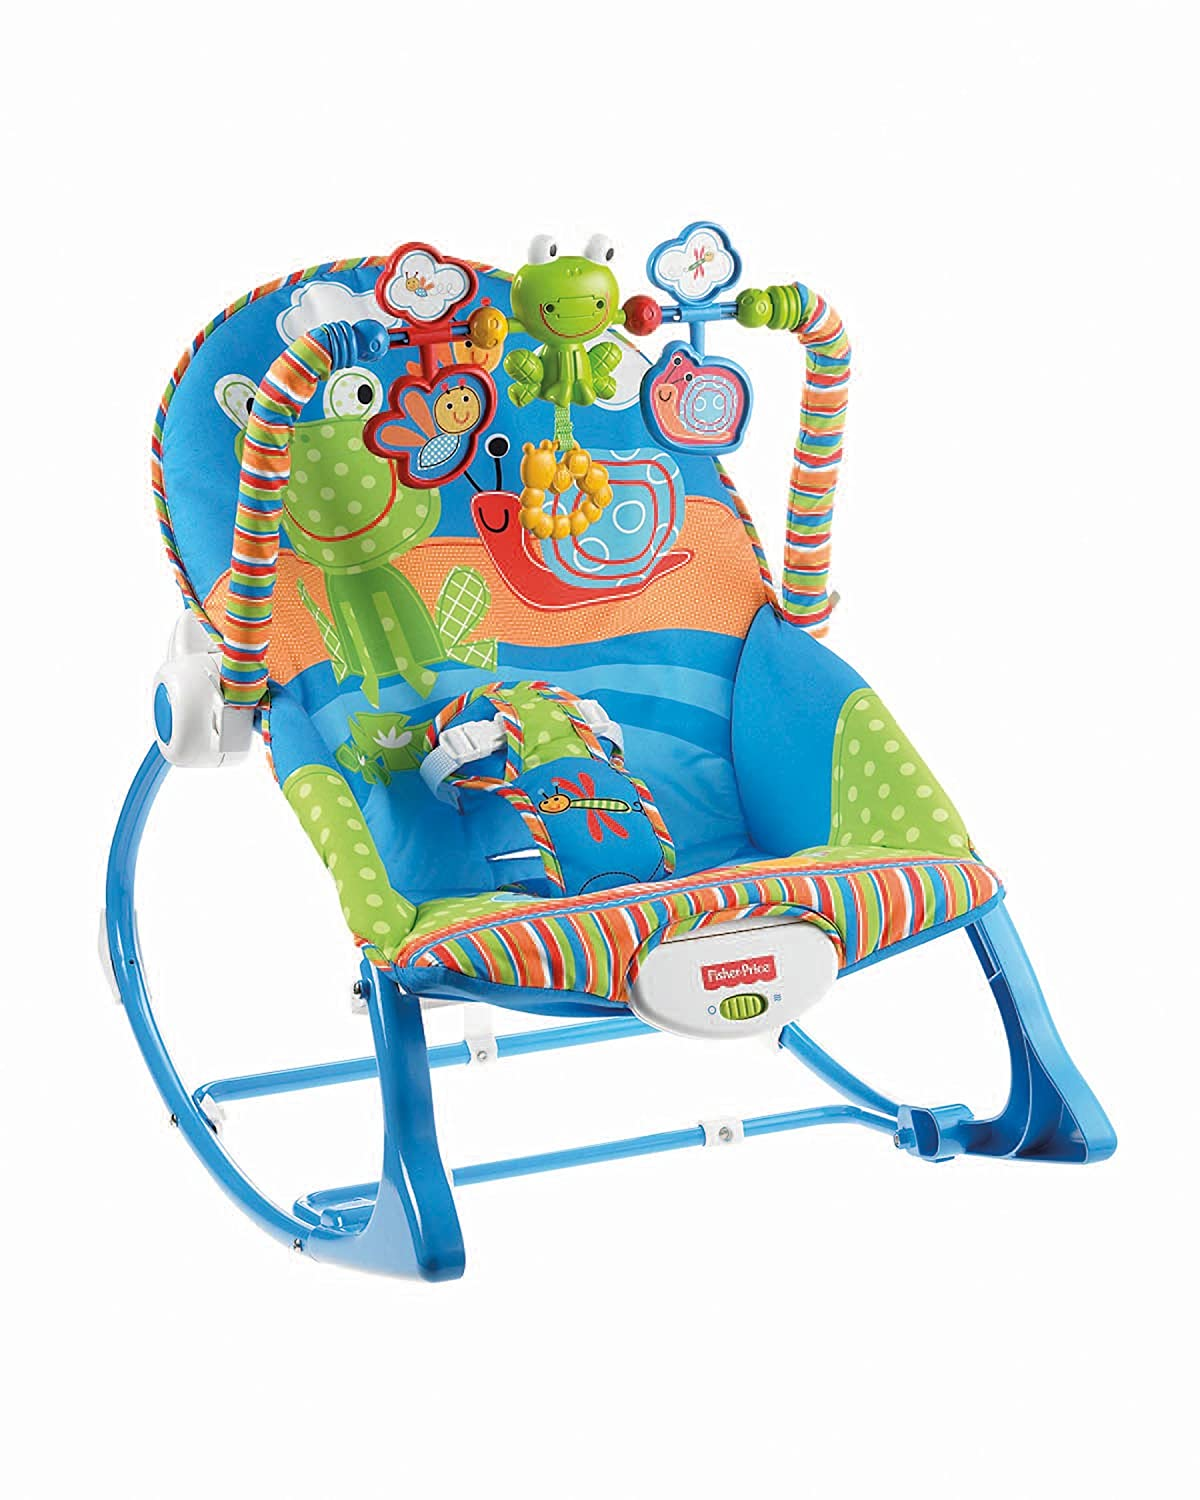 Fisher-Price Infant-to-Toddler Rocker, Blue/Orange/Green [Amazon Exclusive] X7033